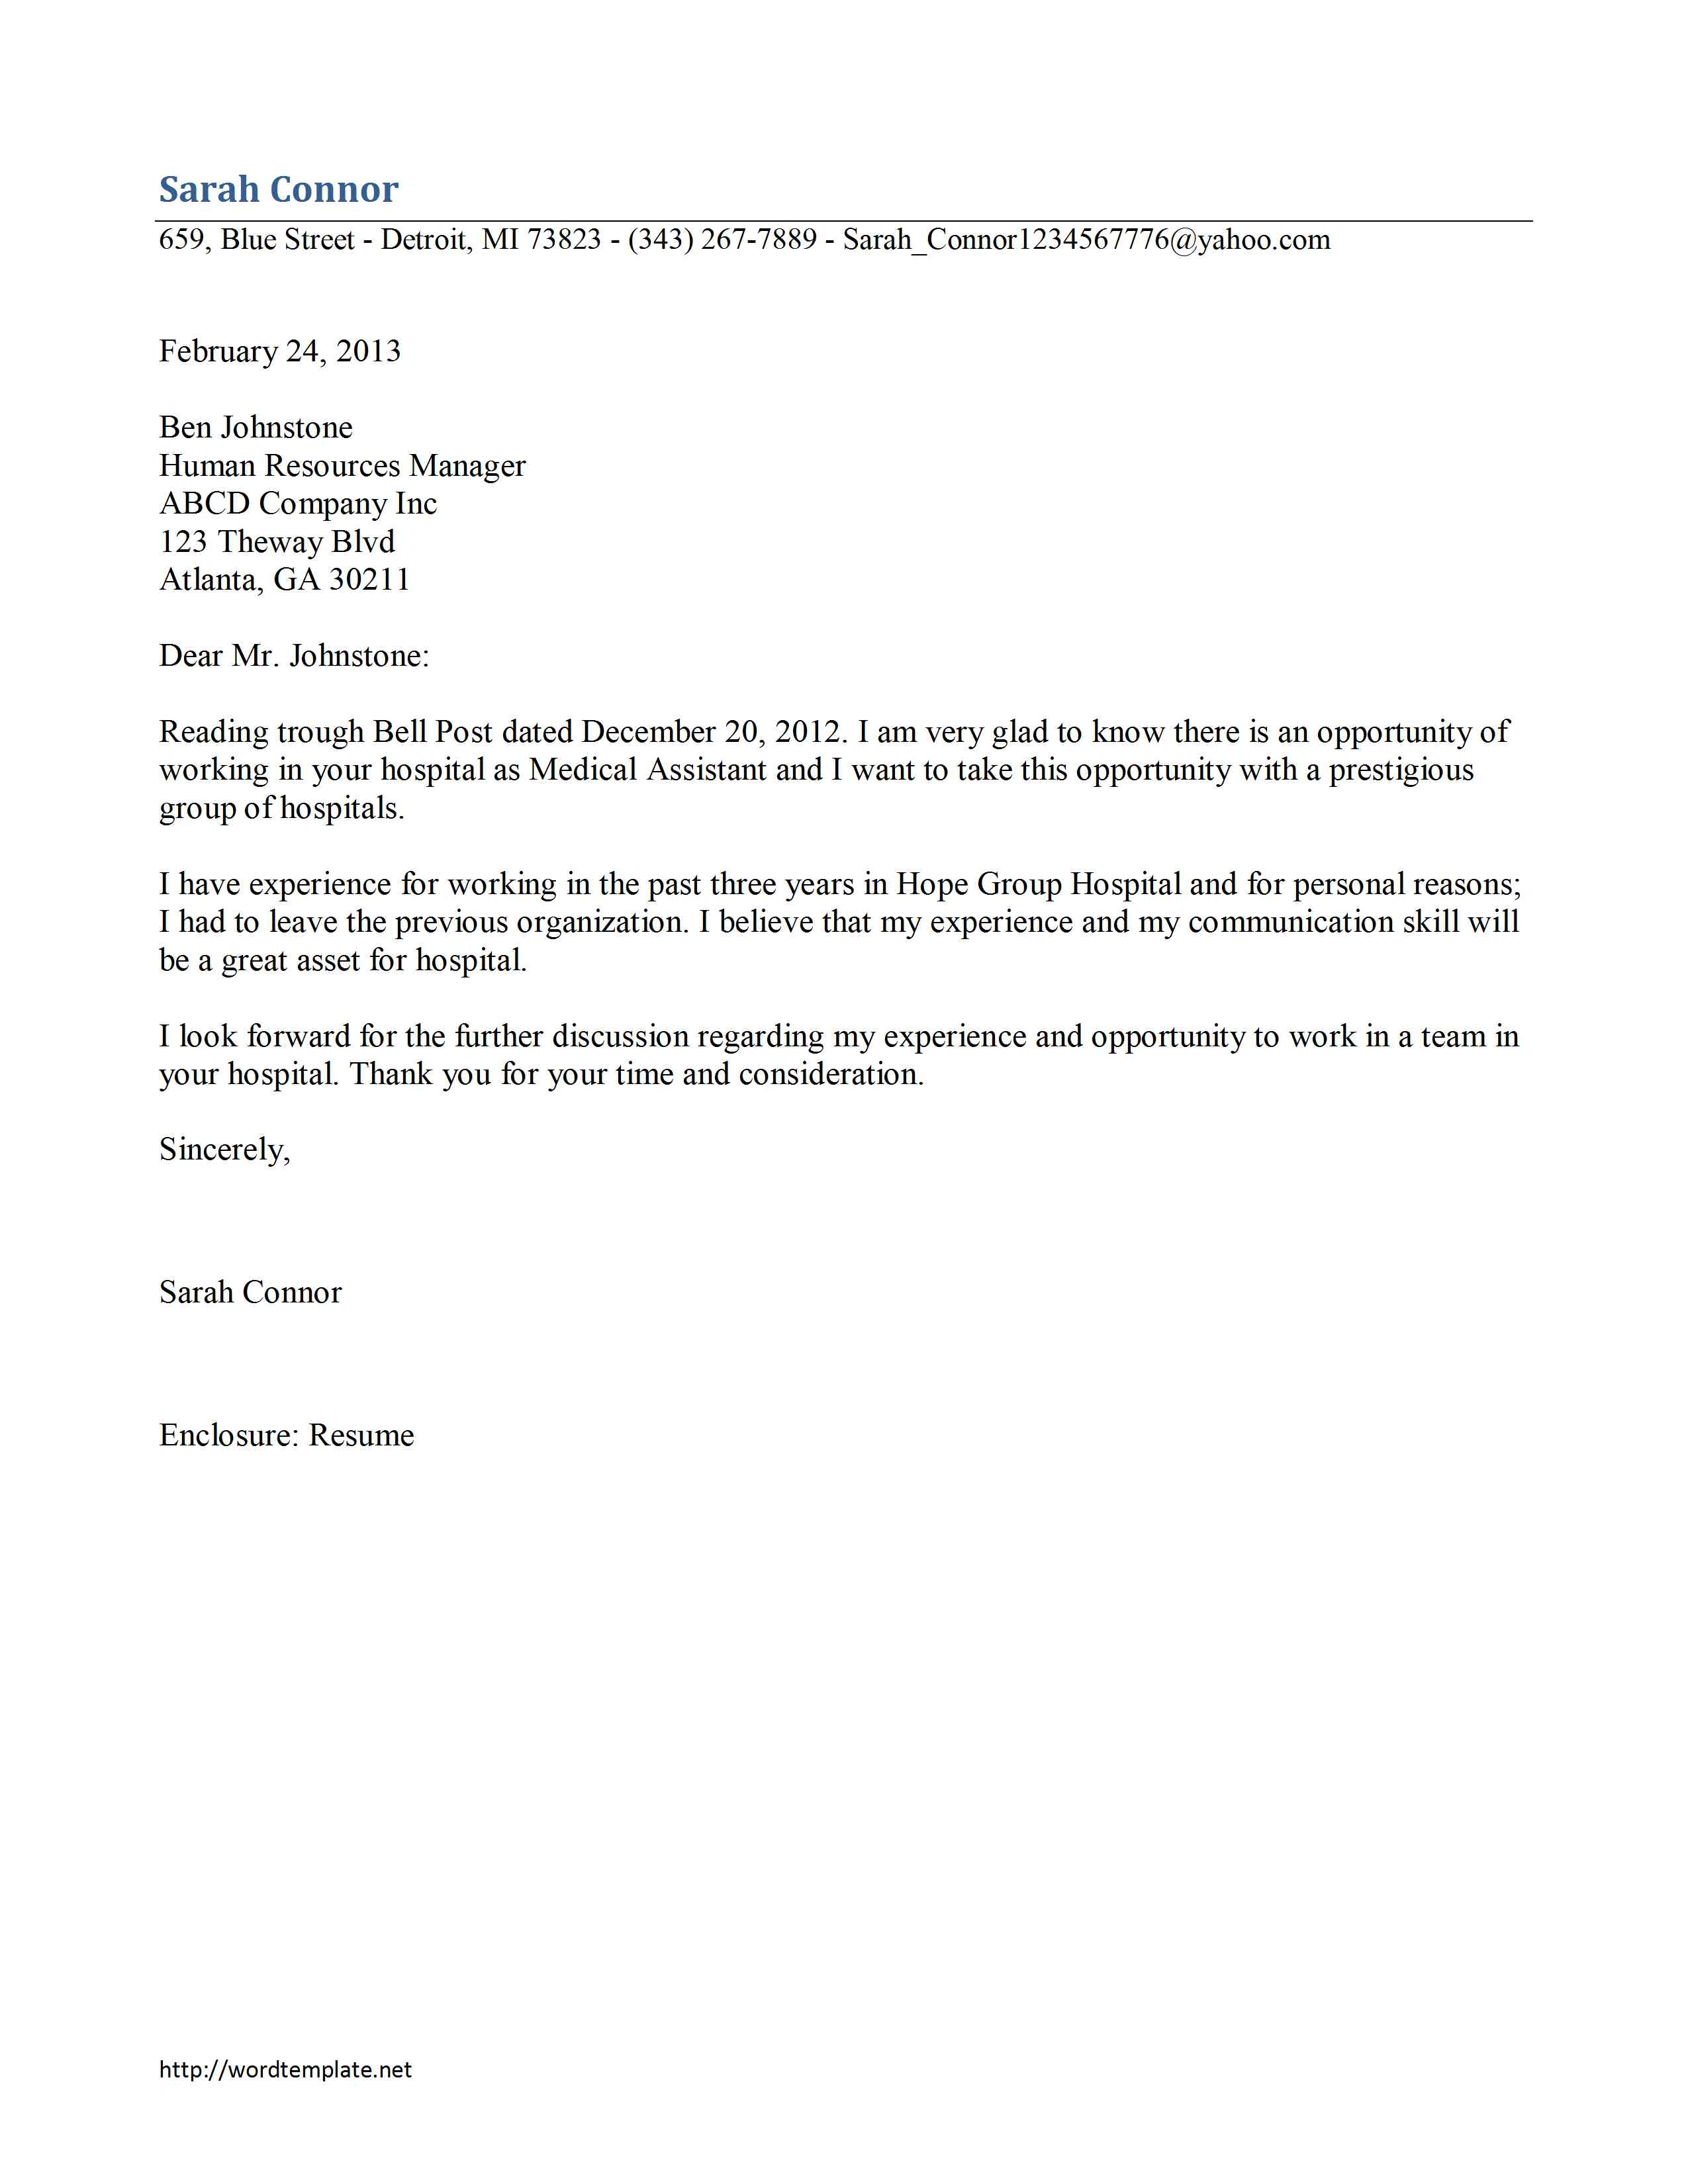 printable cover letter  Free Microsoft Word Templates